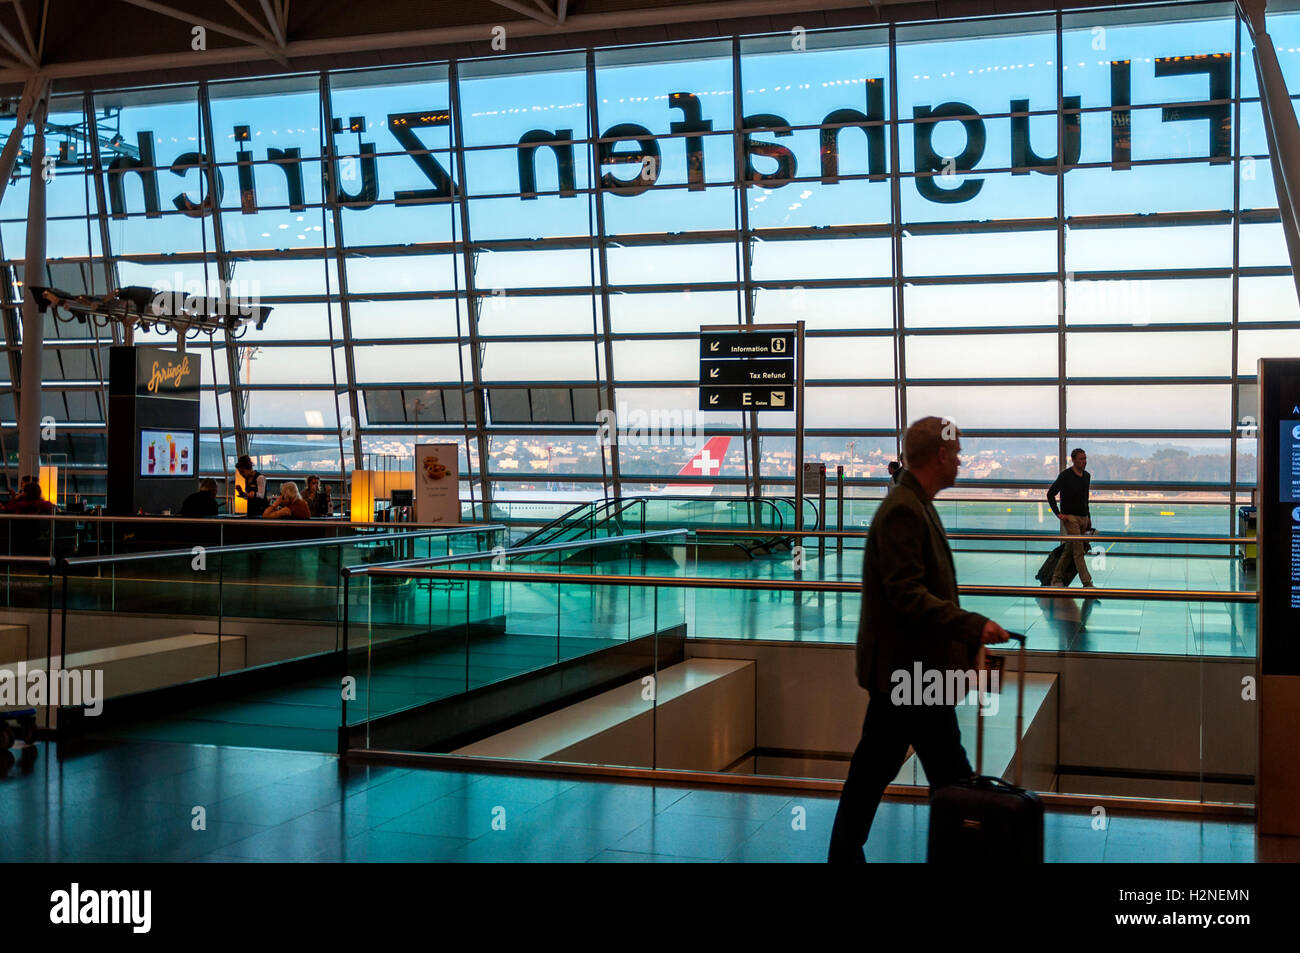 Zürich Airport, Flughafen Zürich, also known as Kloten Airport, the largest international airport of Switzerland - Stock Image